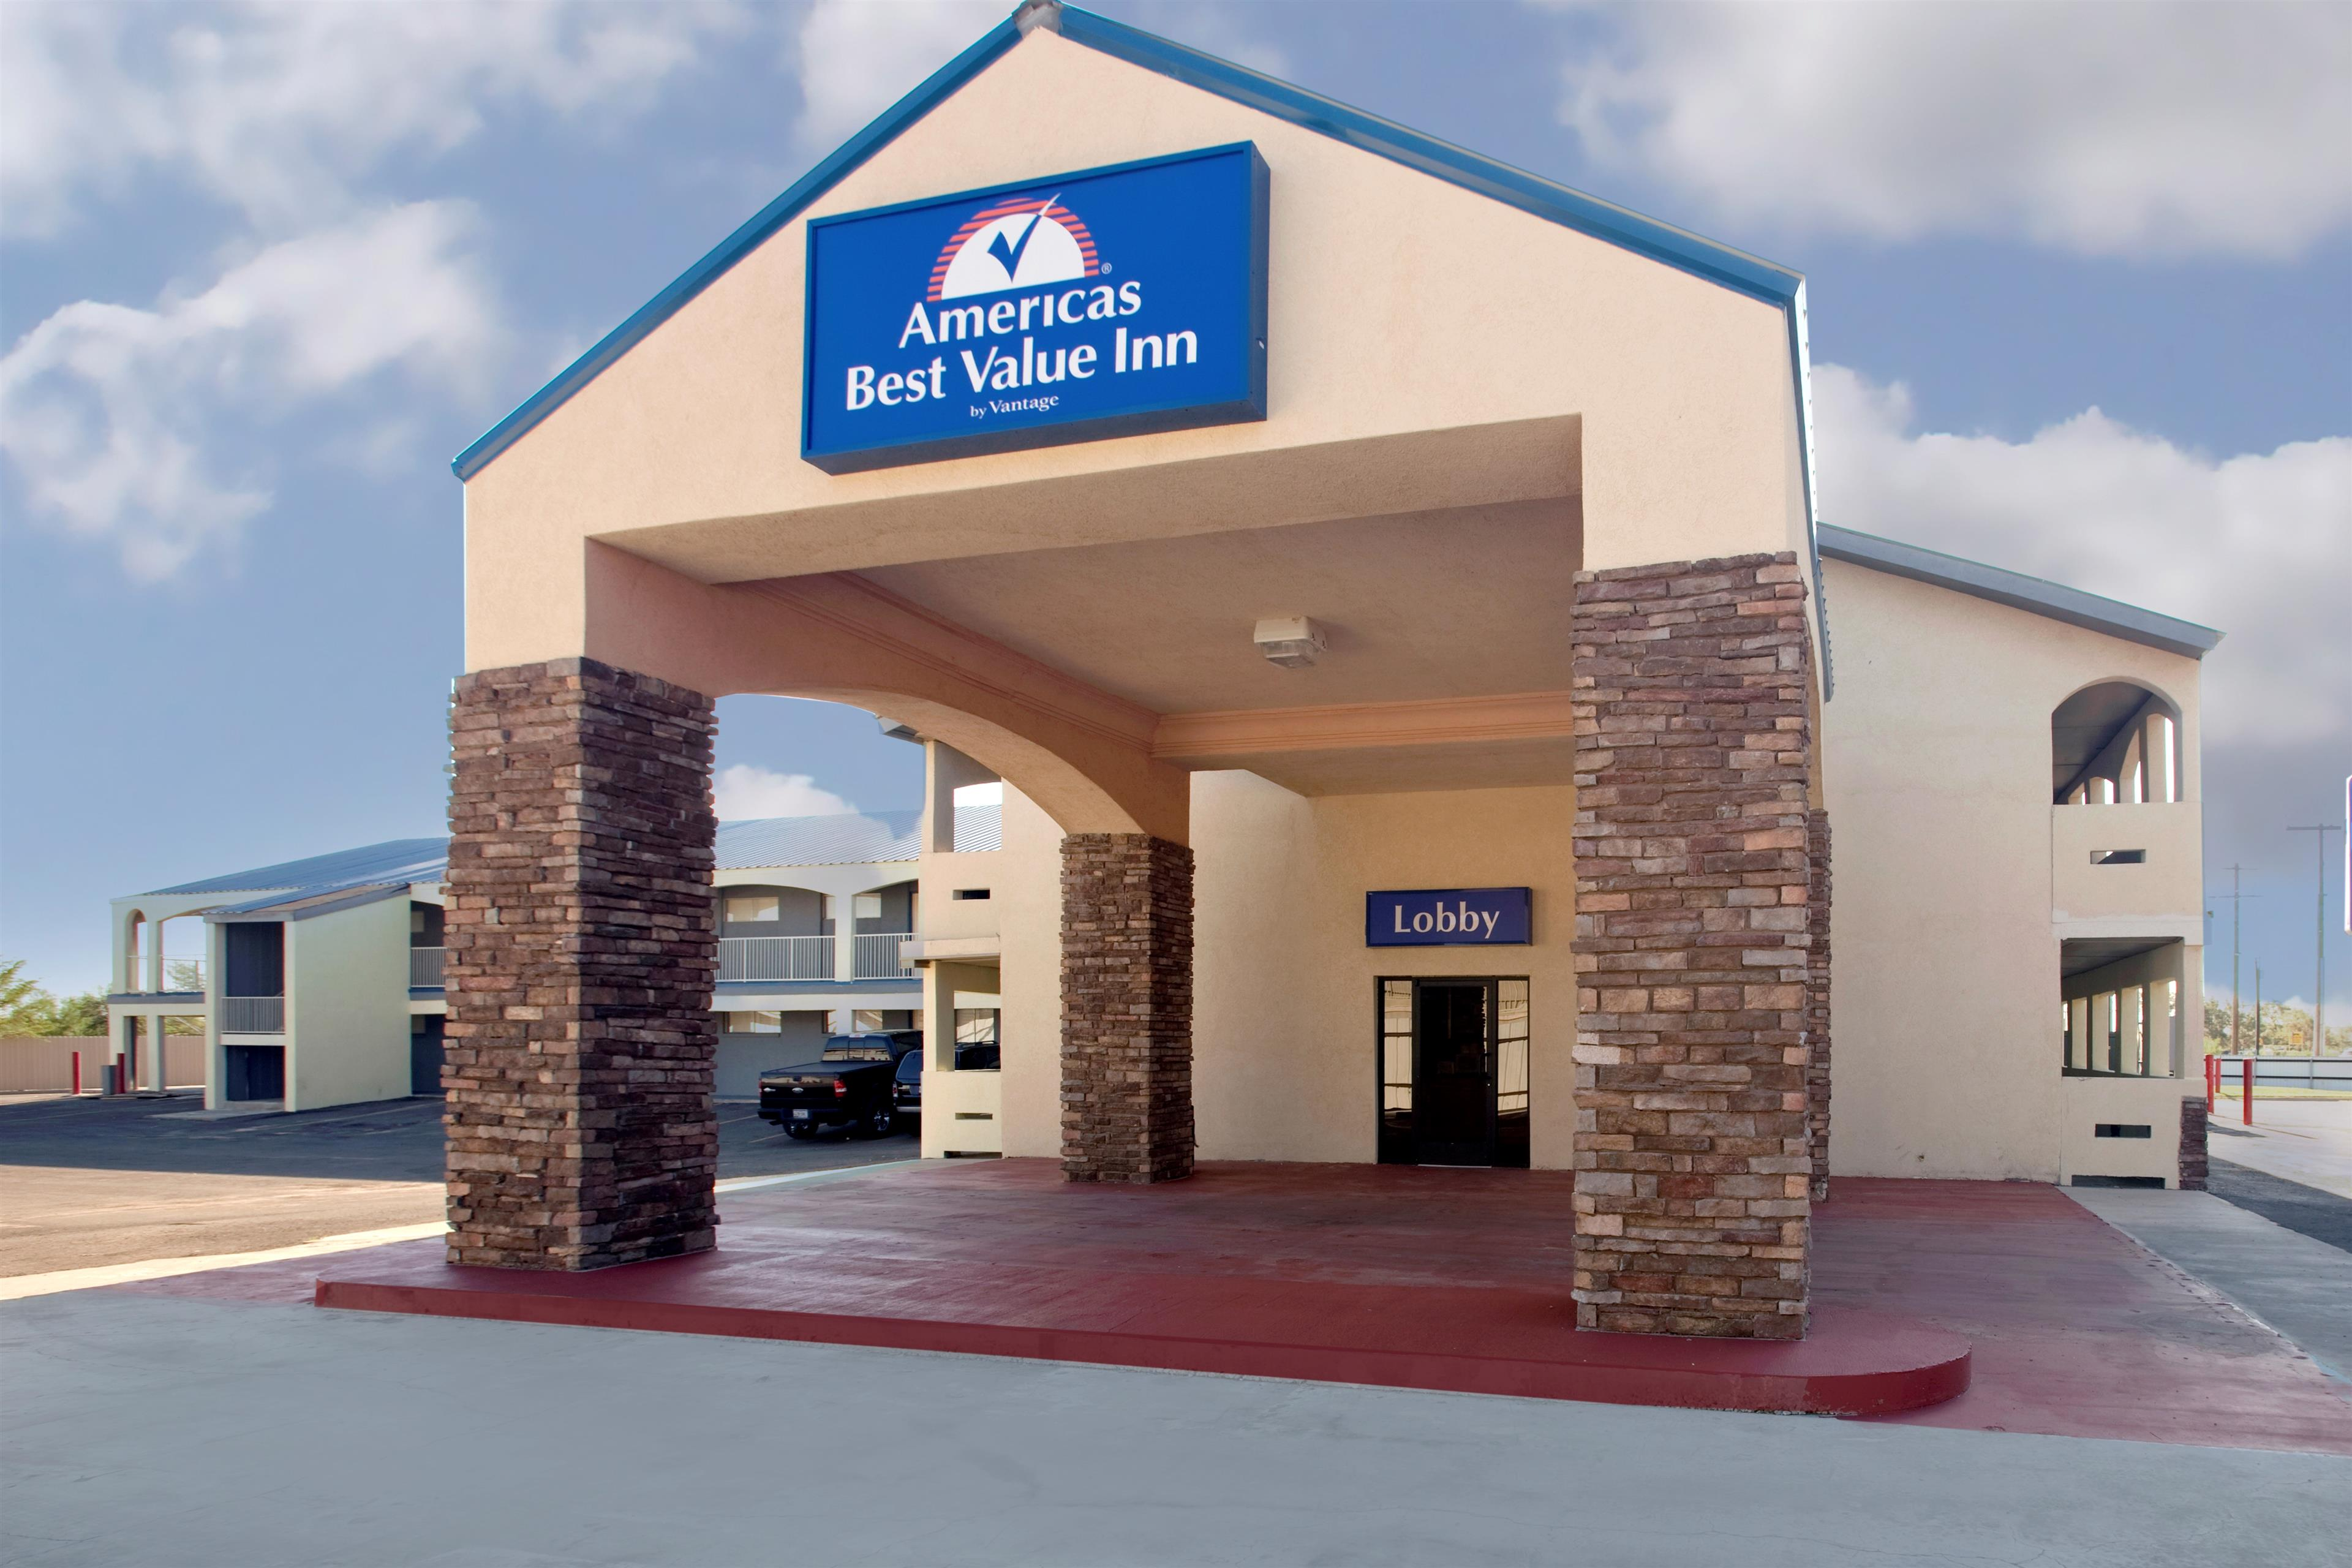 Americas best value inn midland coupons near me in midland for Americas best coupon code